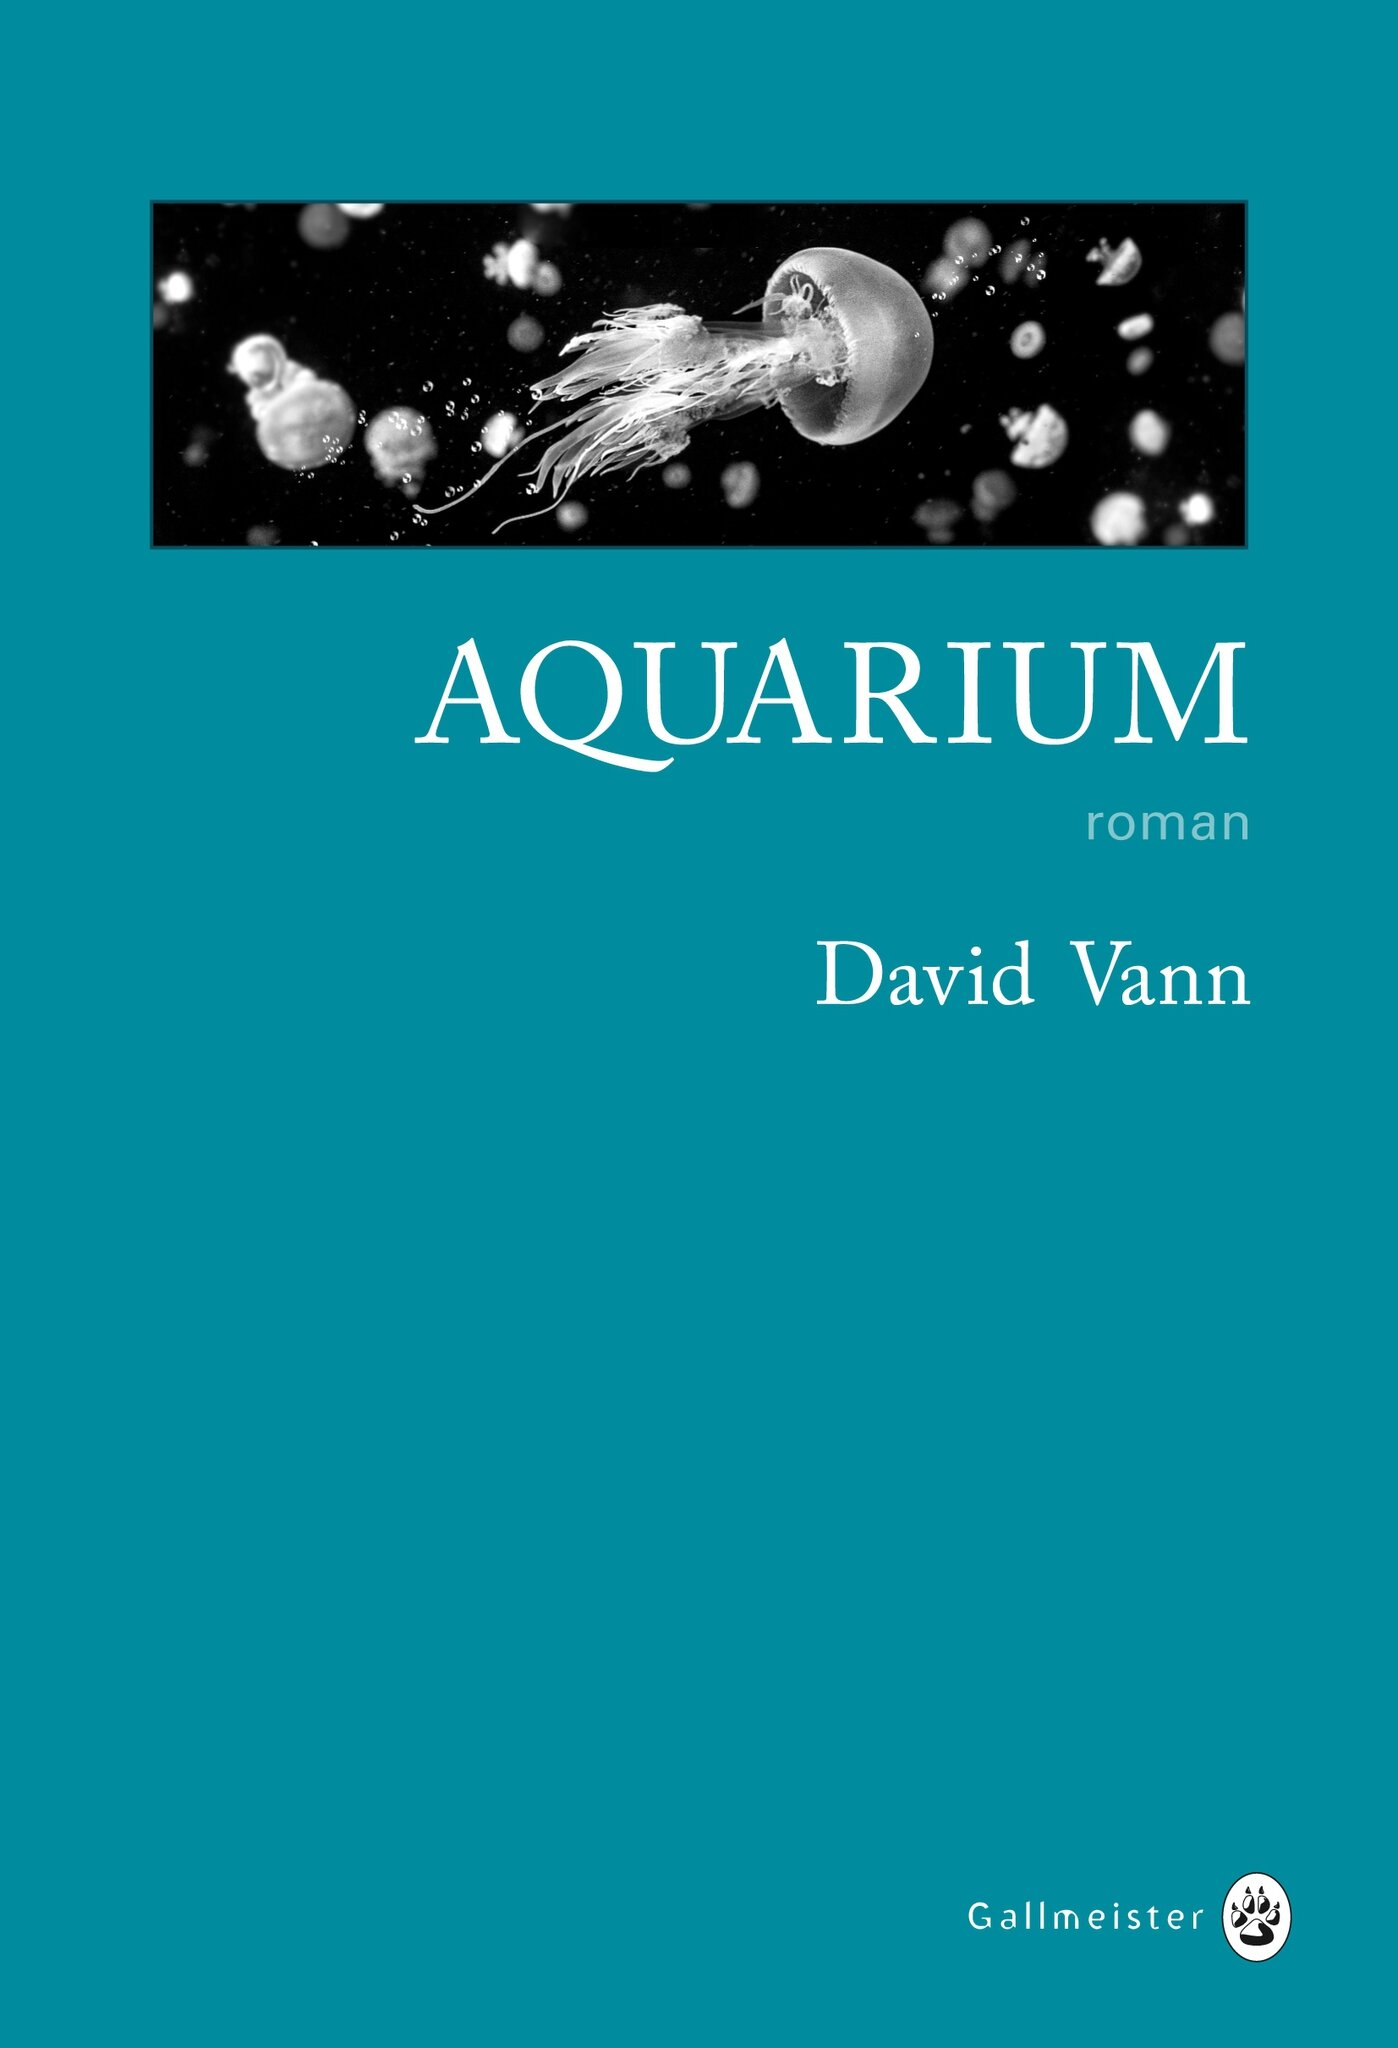 David Vann - Aquarium